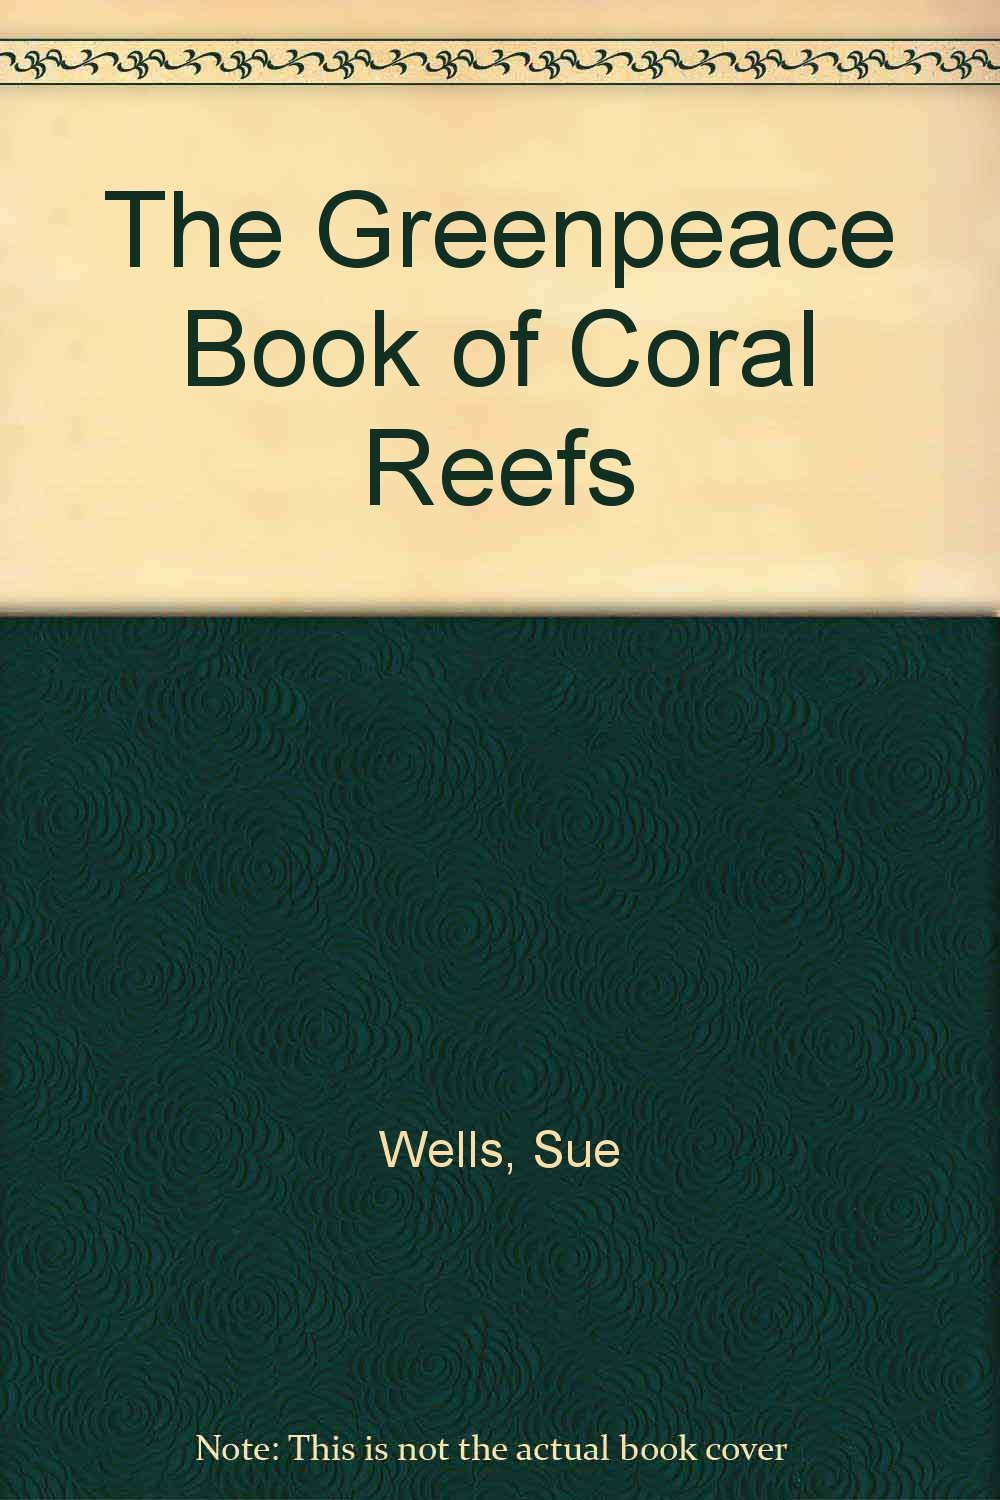 The Greenpeace Book of Coral Reefs